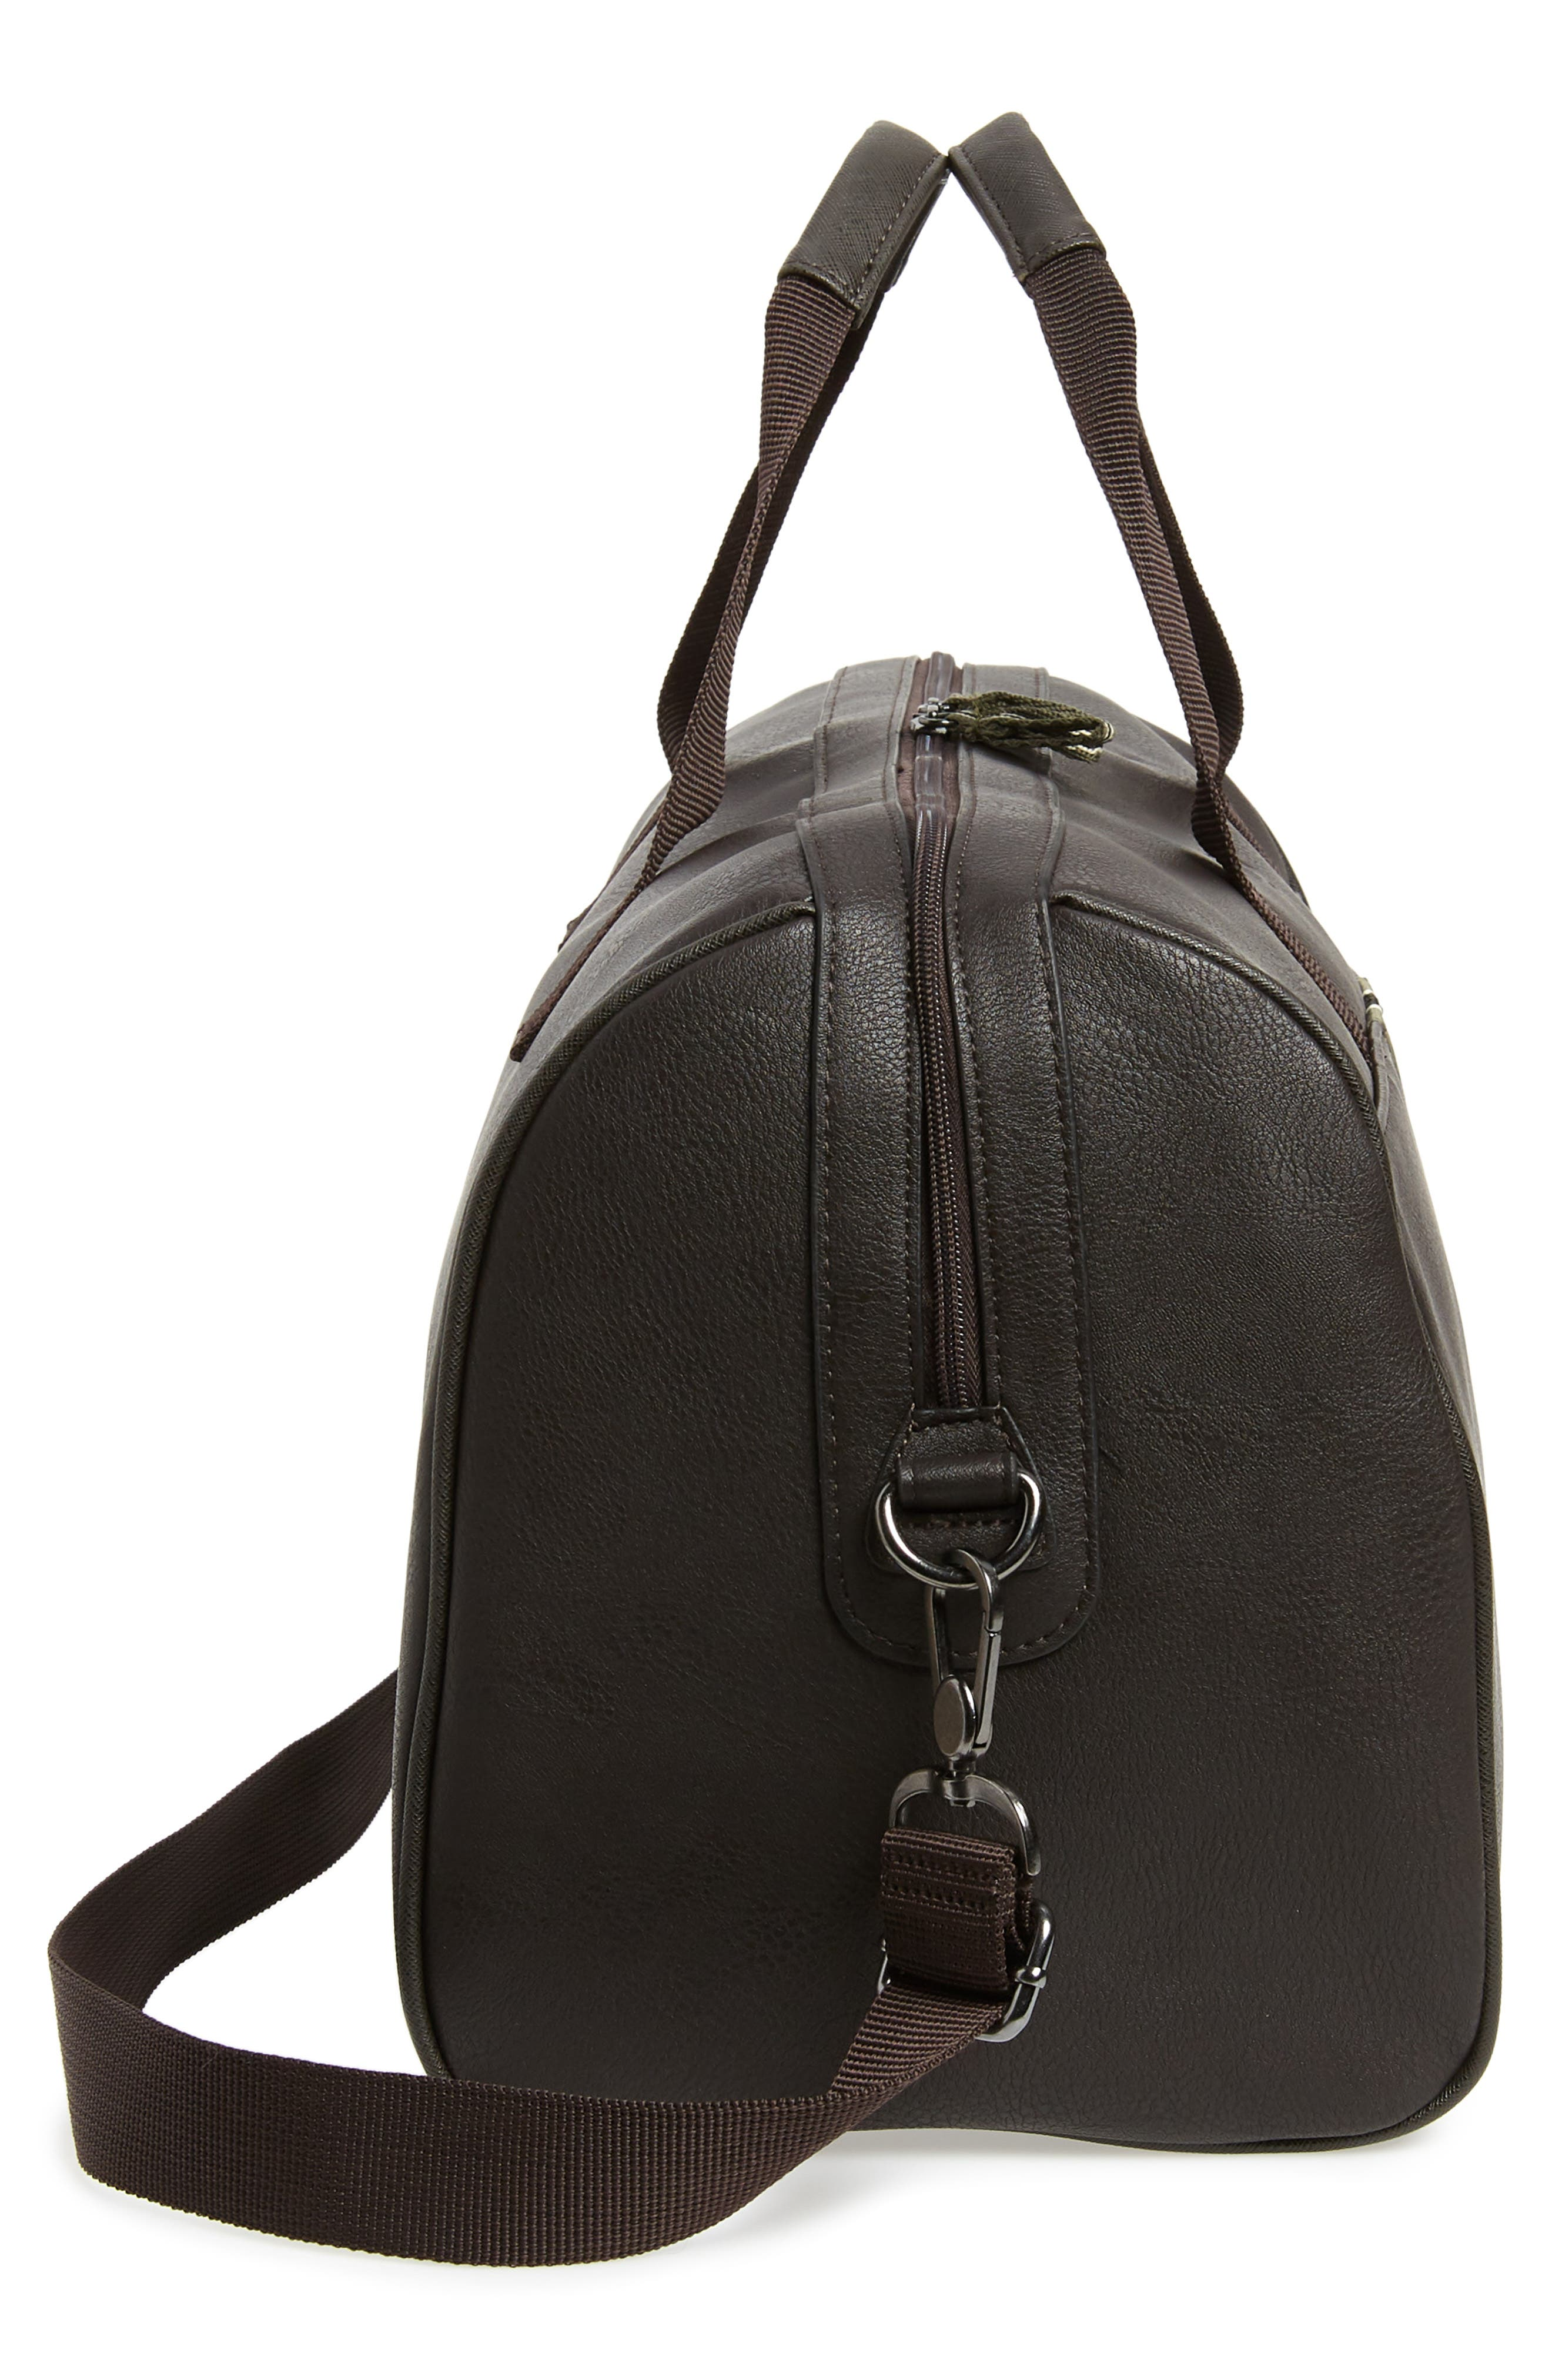 TED BAKER LONDON, Webbing Duffle Bag, Alternate thumbnail 5, color, CHOCOLATE